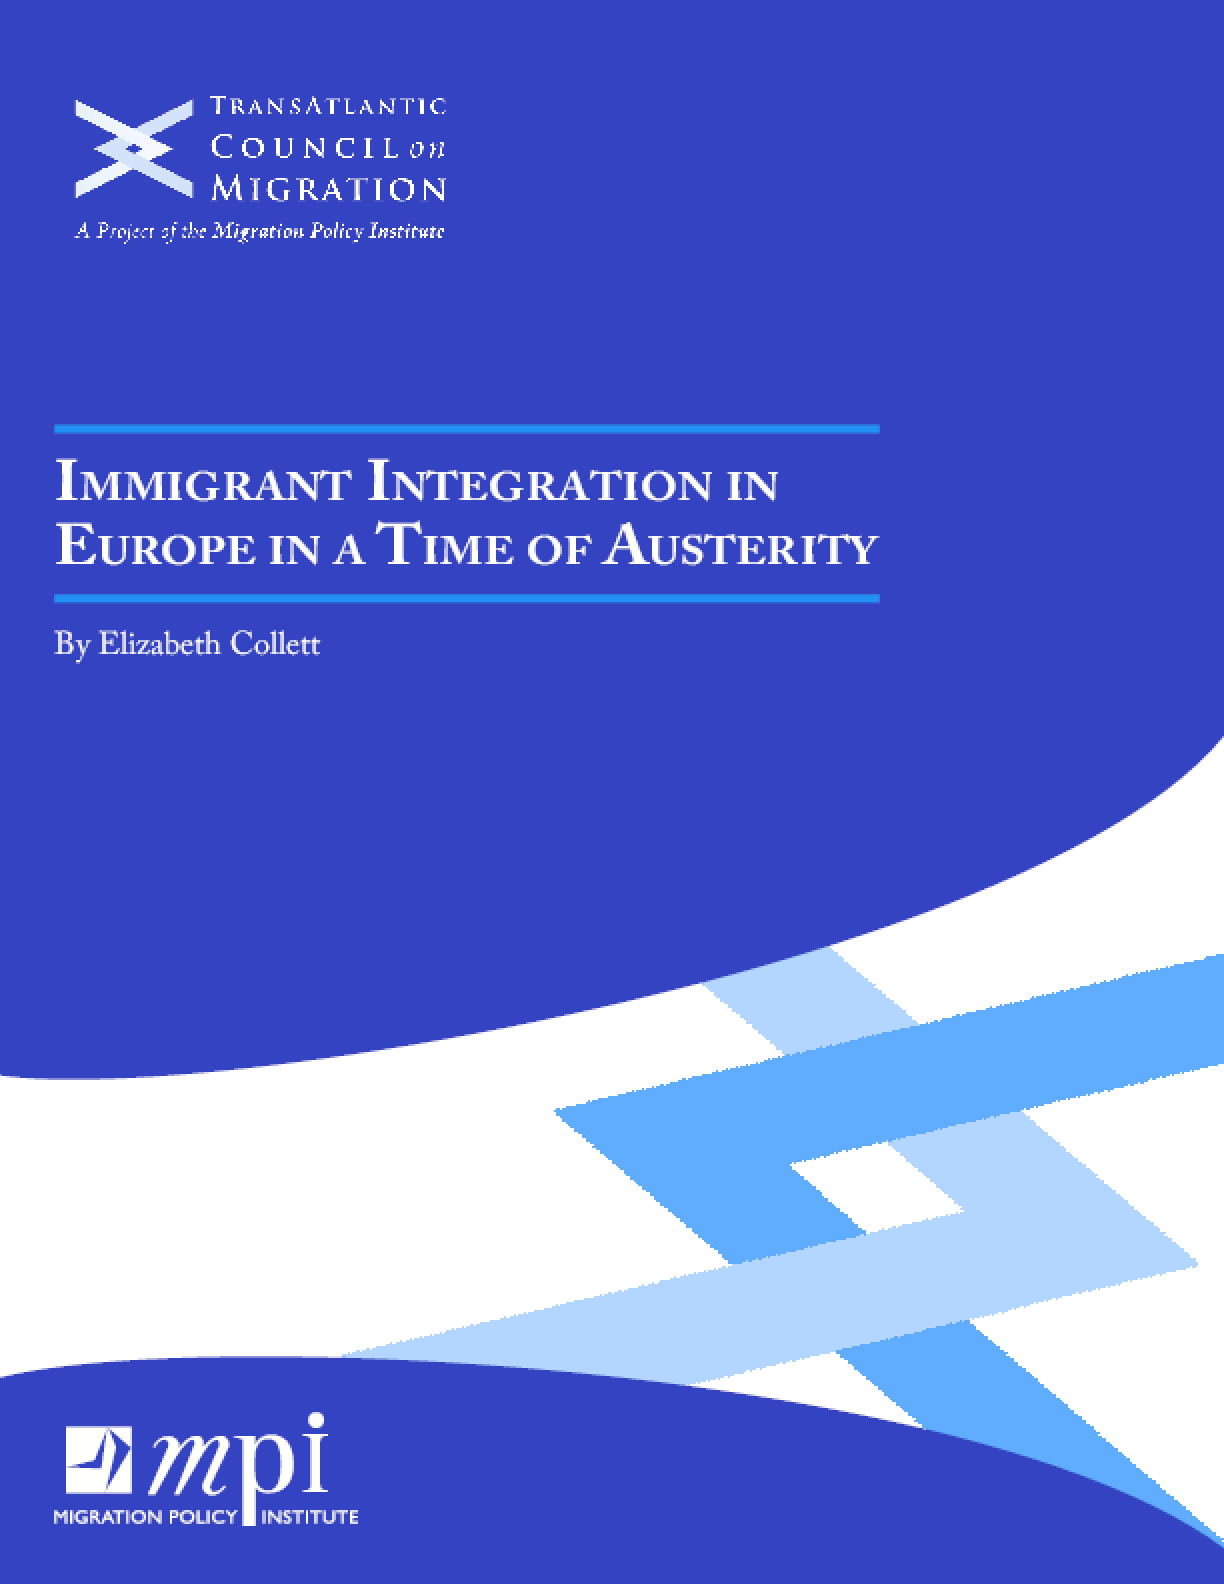 Immigrant Integration in a Time of Austerity